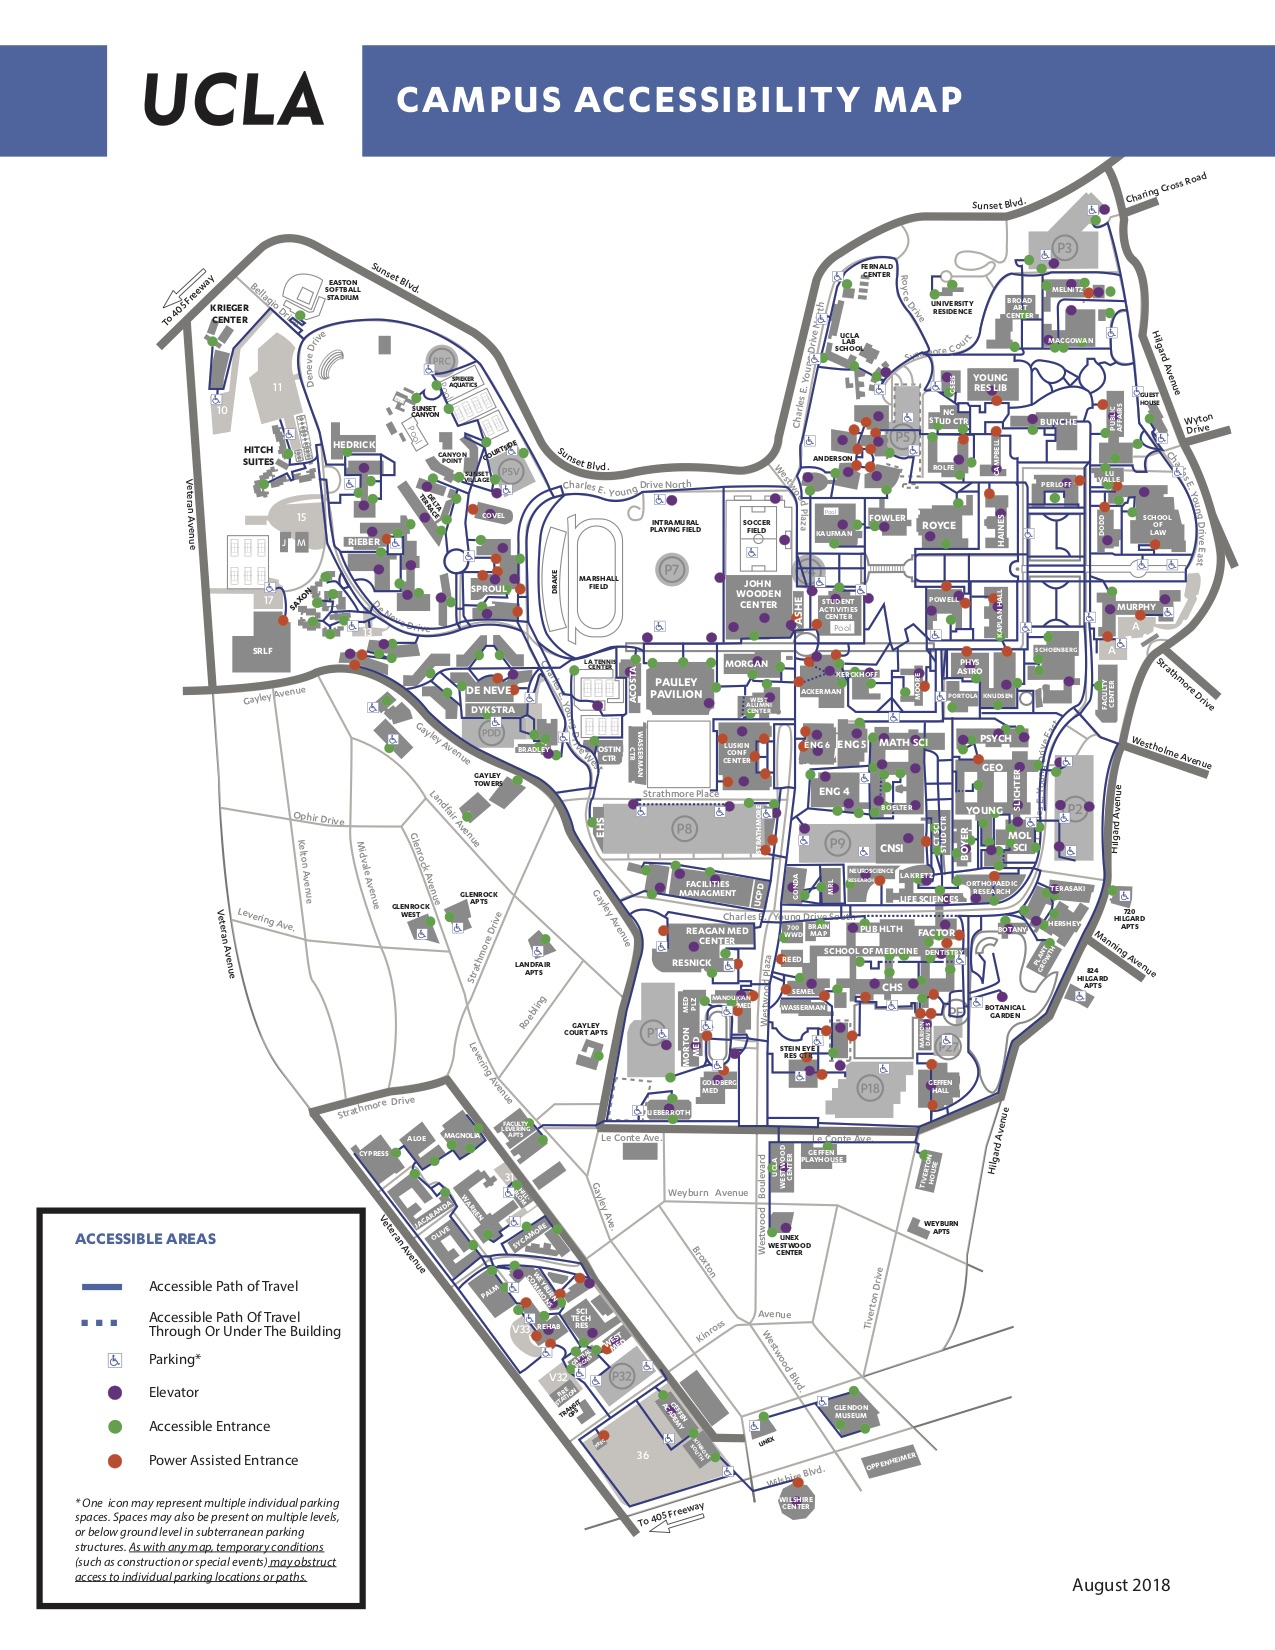 Accessibility and Inclusion – UCLA QGrad: Graduate ... on ucla mascot, ucla direction map, westwood map, ucla seal, ucla california map, ucla parking lot map, ucla tuition, ucla map pdf, ucla bruins, ucla housing, ucla map and area, campbell hall ucla map, ucla logo, ucla address, ucla residence hall map, ucla pool, ucla school map,